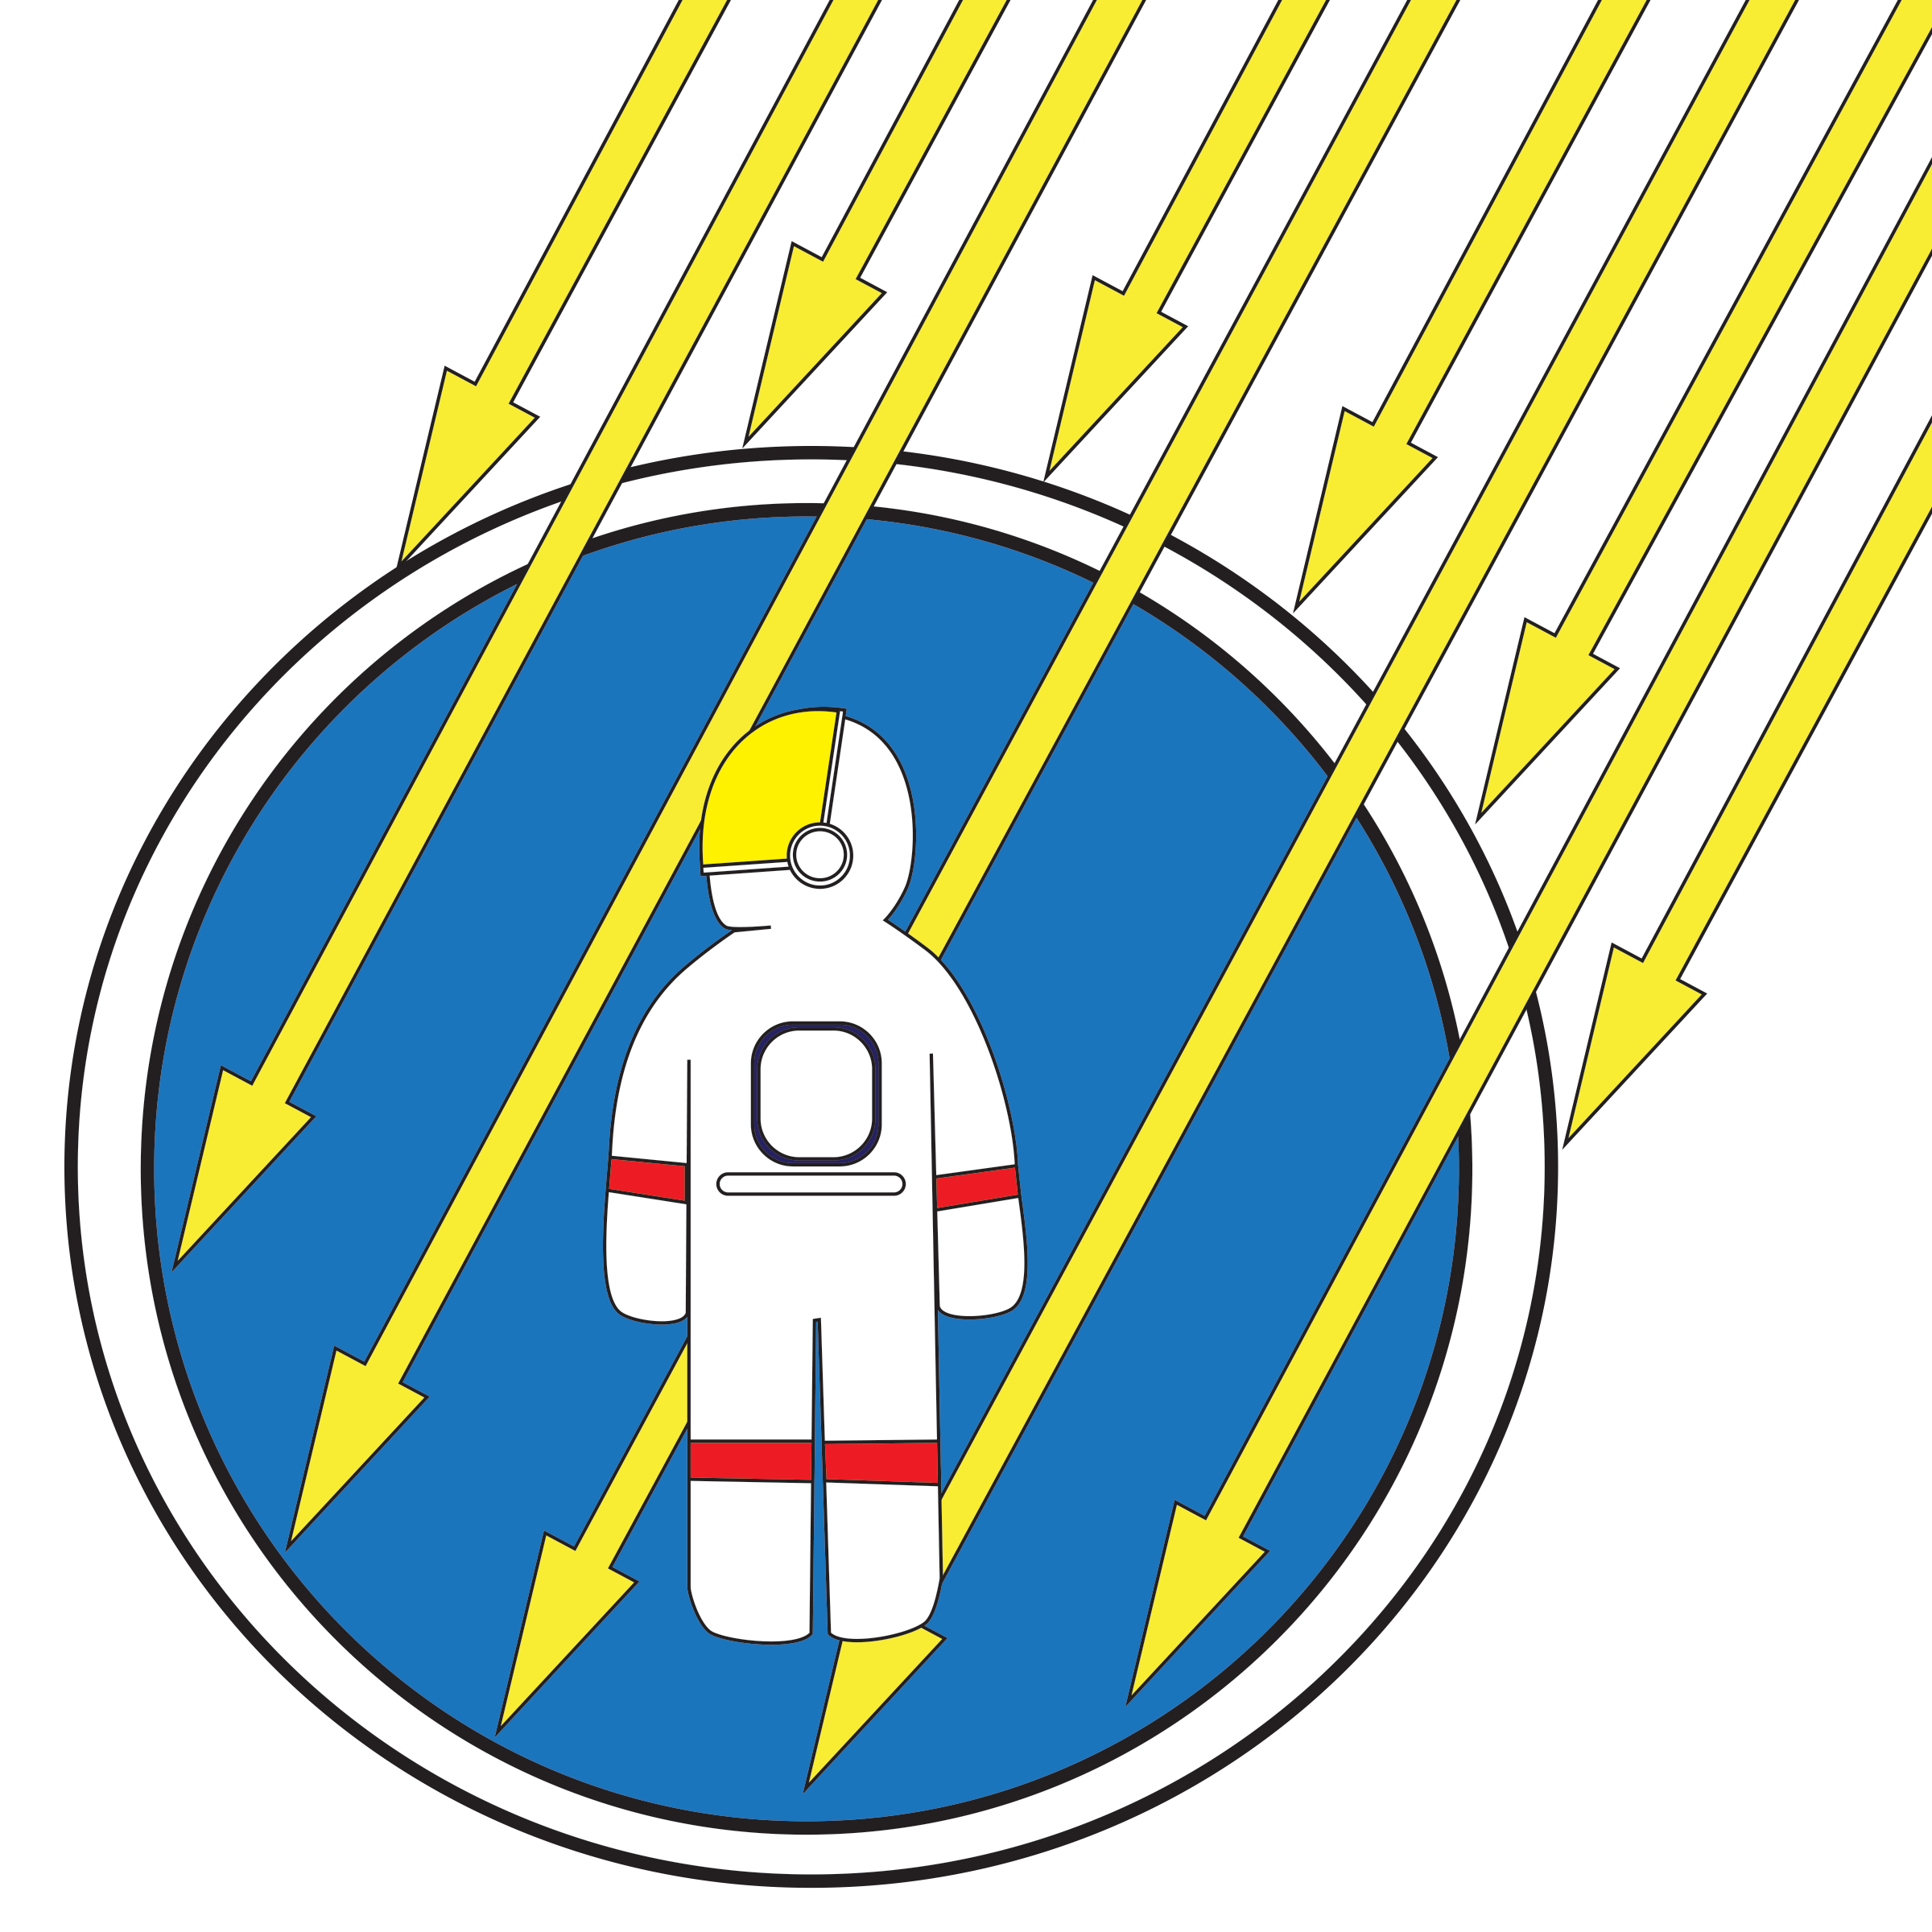 Space clipart space research. Radiation risks nasa hrp